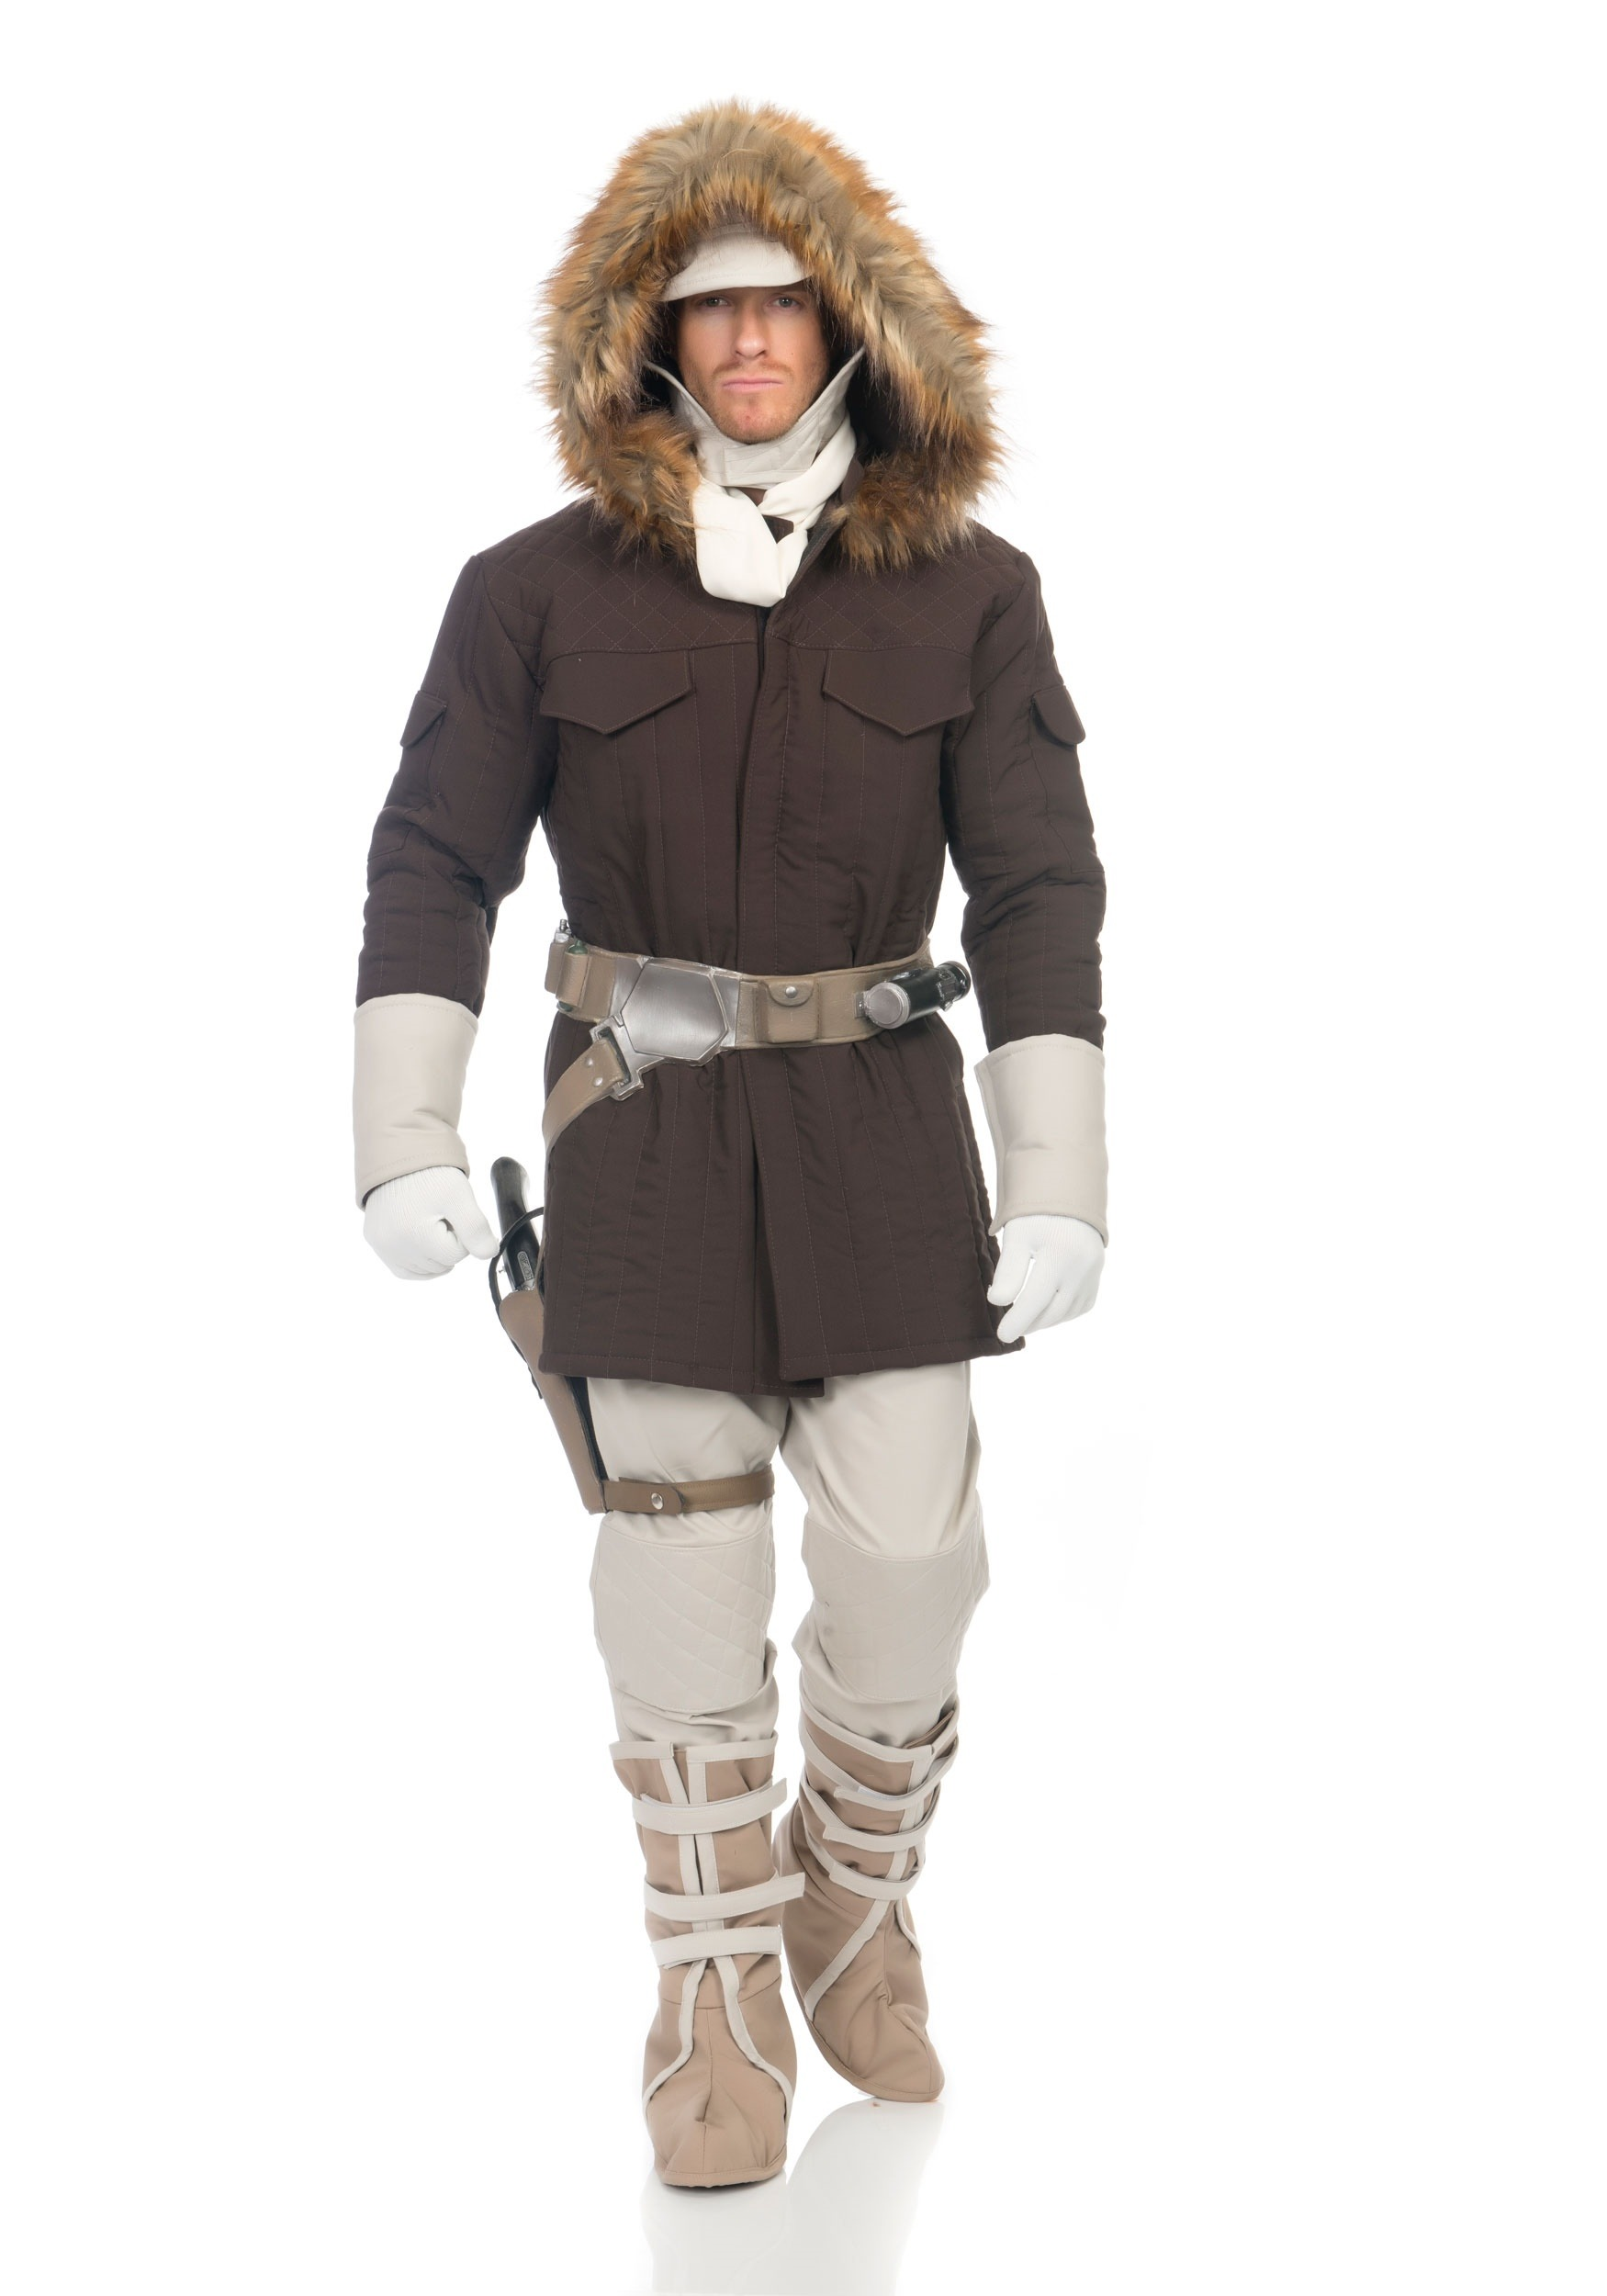 Hoth Han Solo Costume For Men